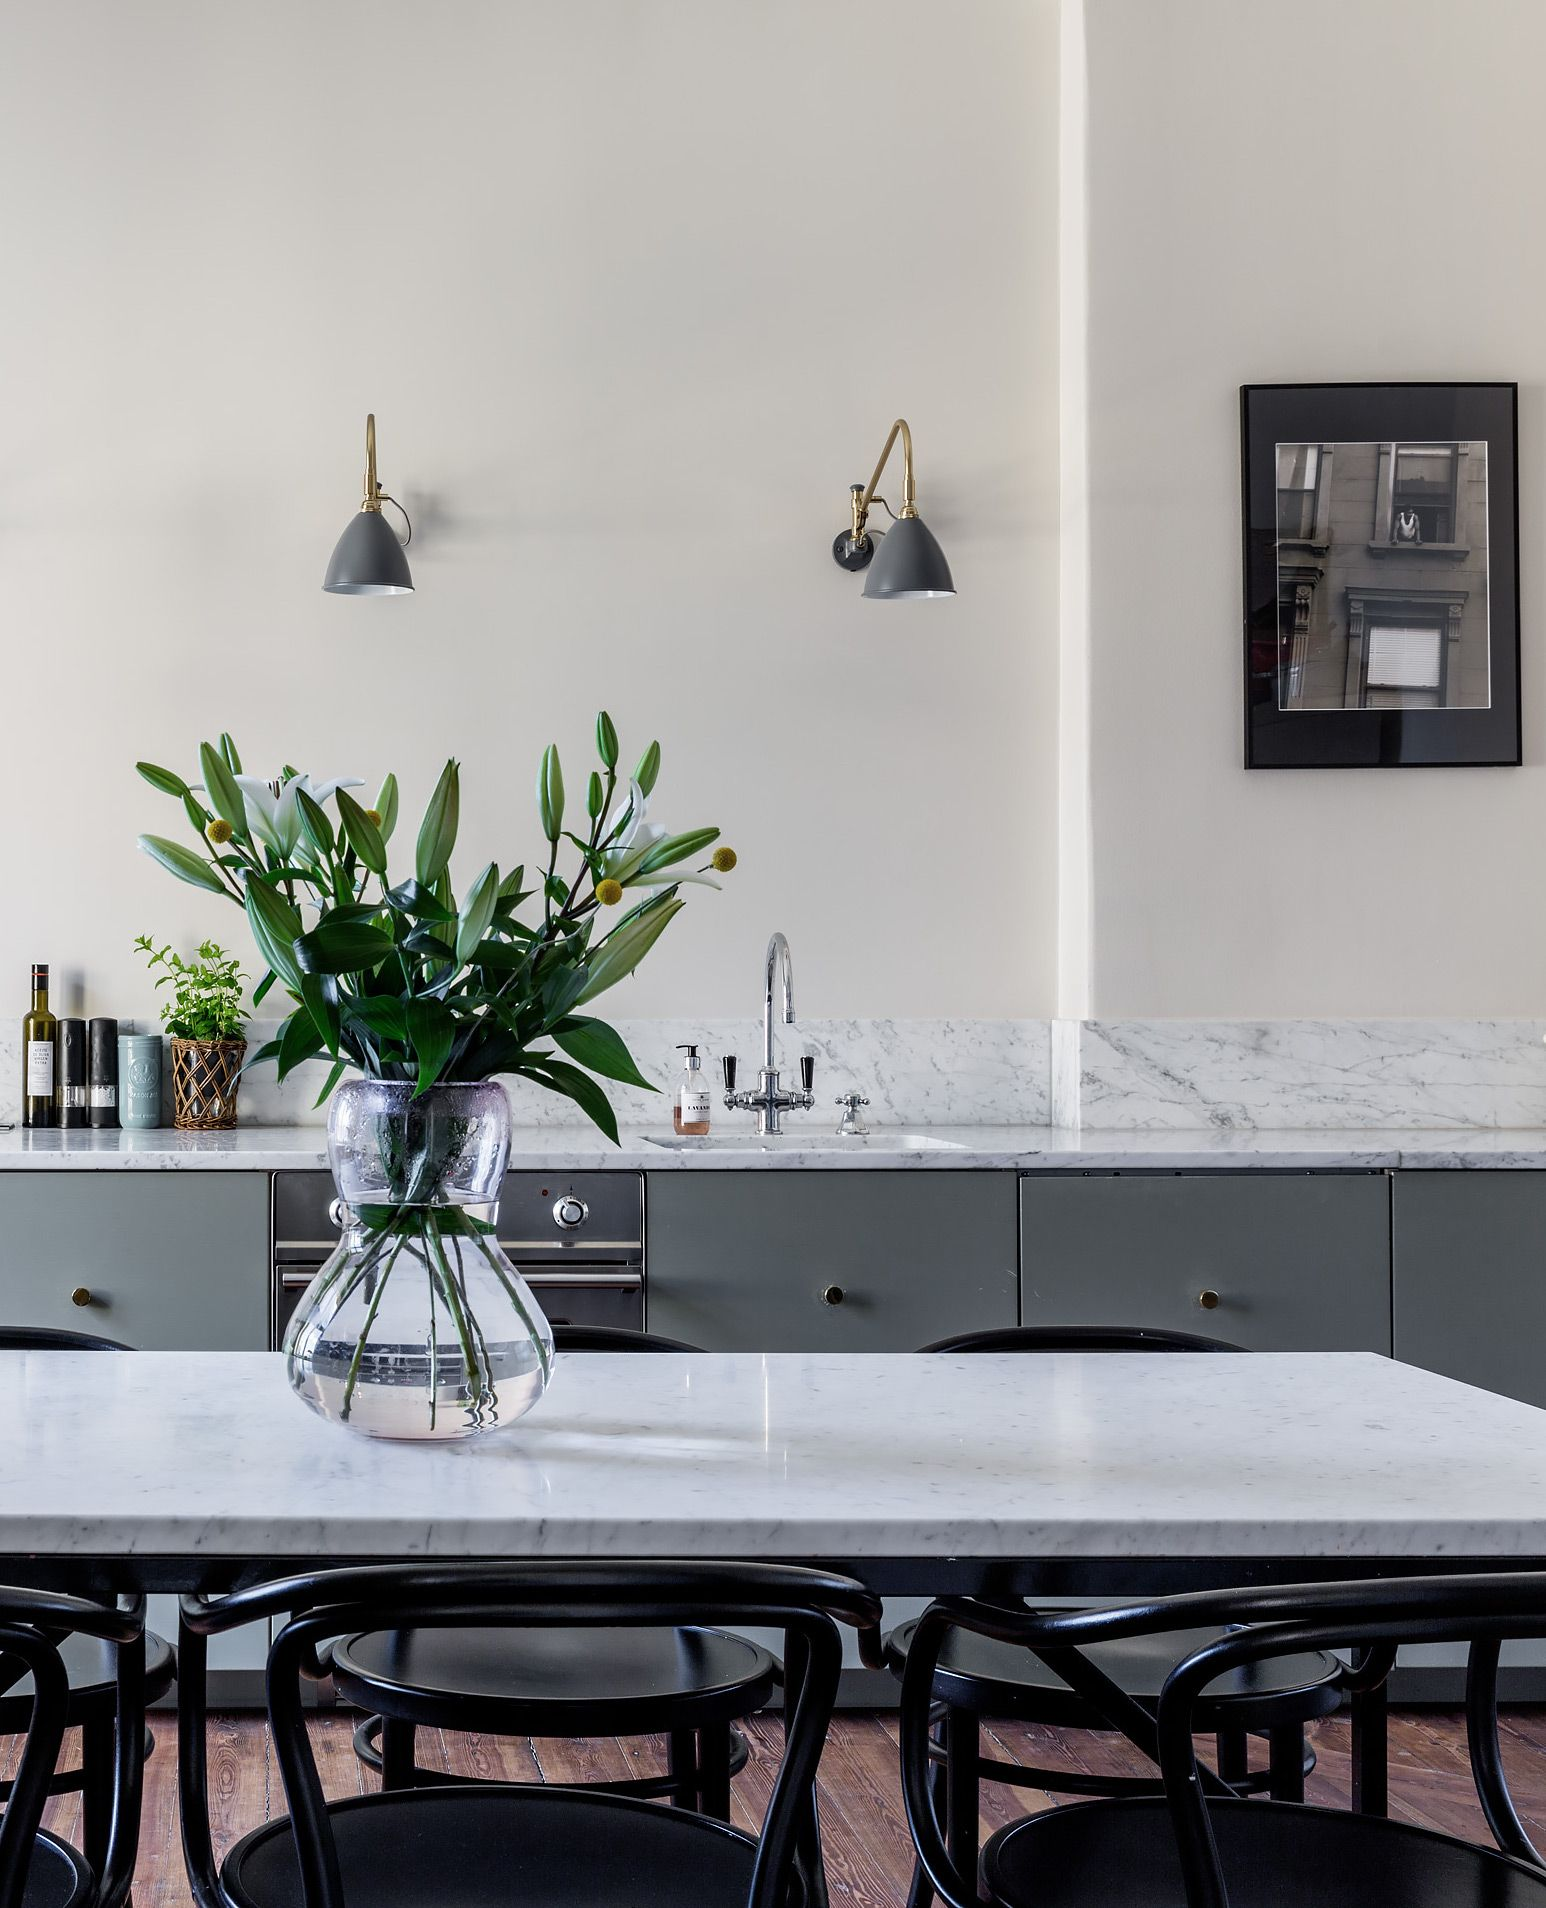 Stylish kitchen and dining space via coco lapine design kitchen